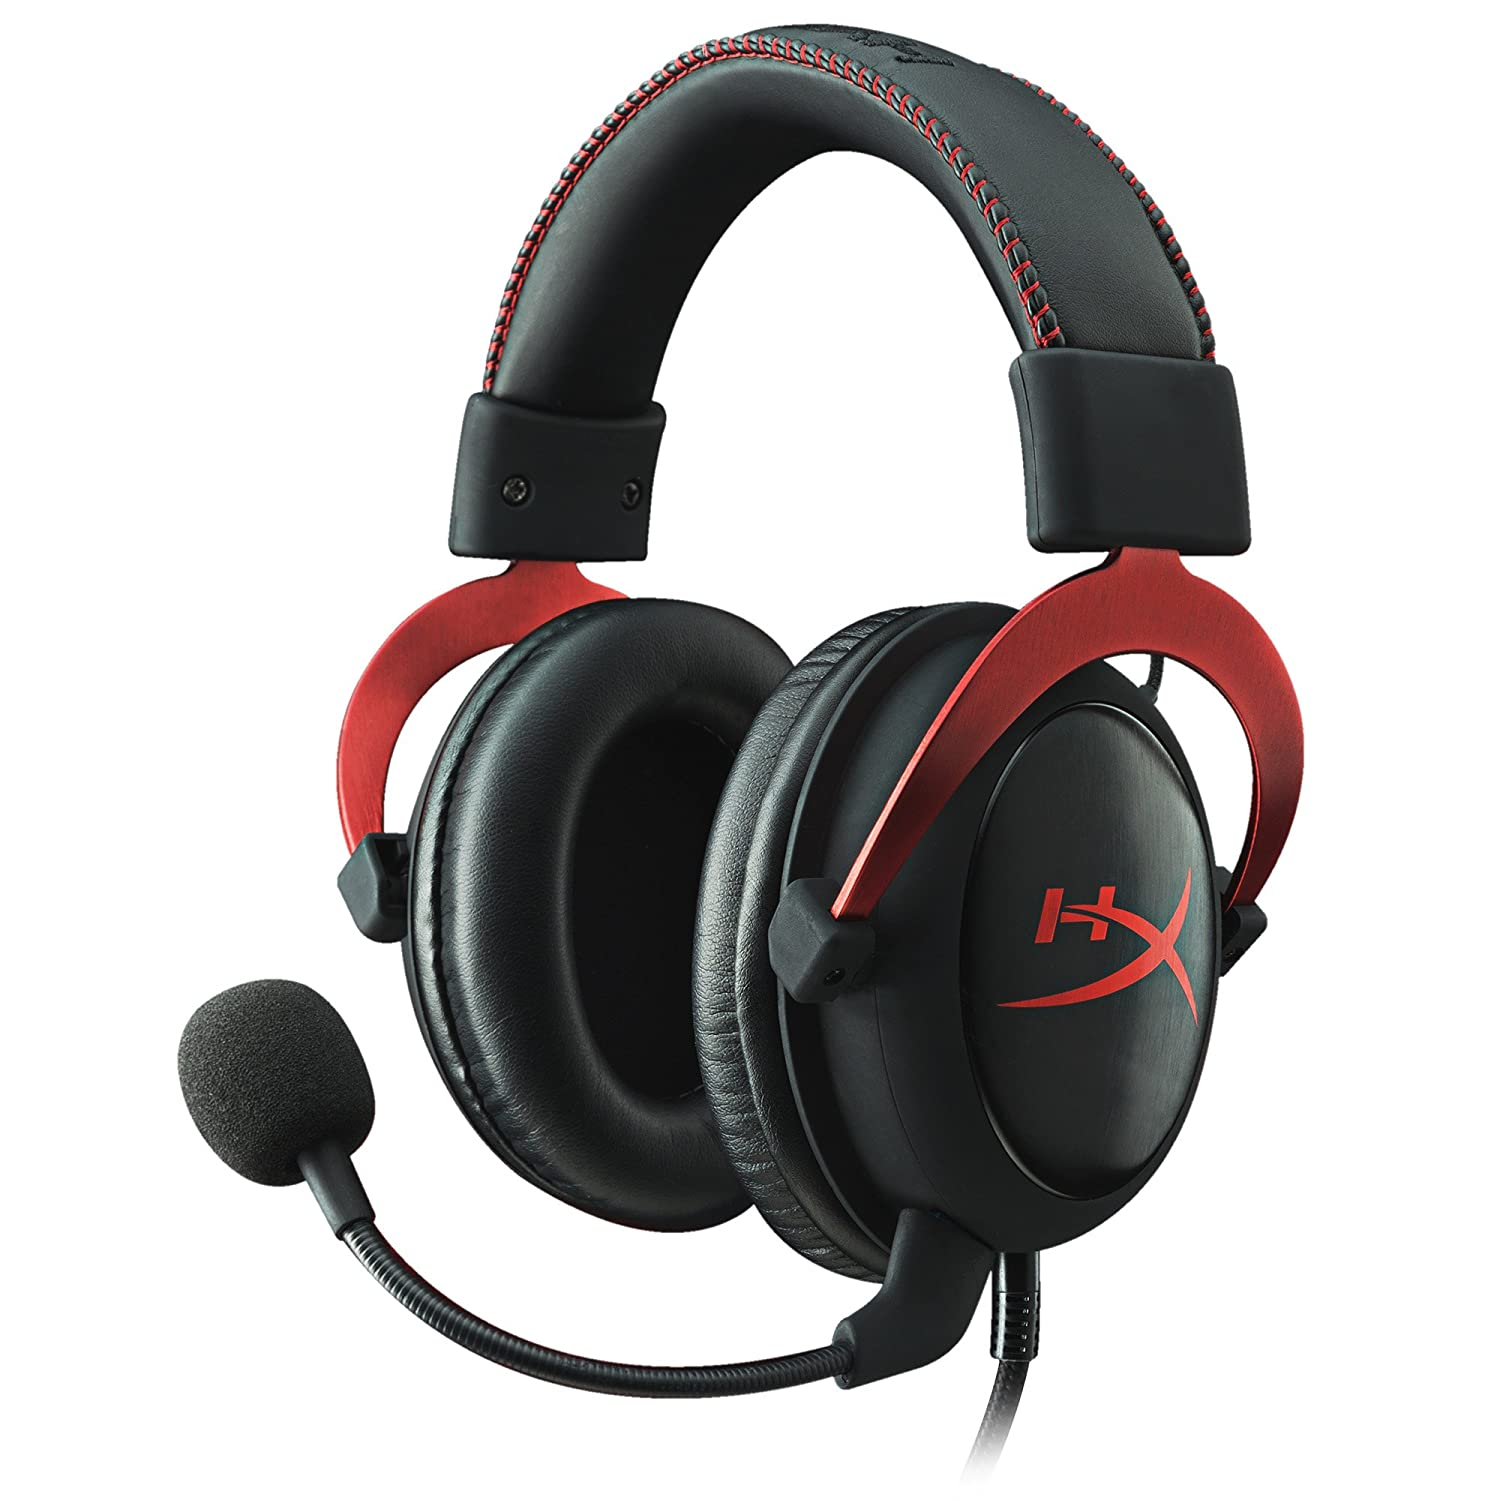 Cascos inalambricos gaming https://amzn.to/2Y8uerv